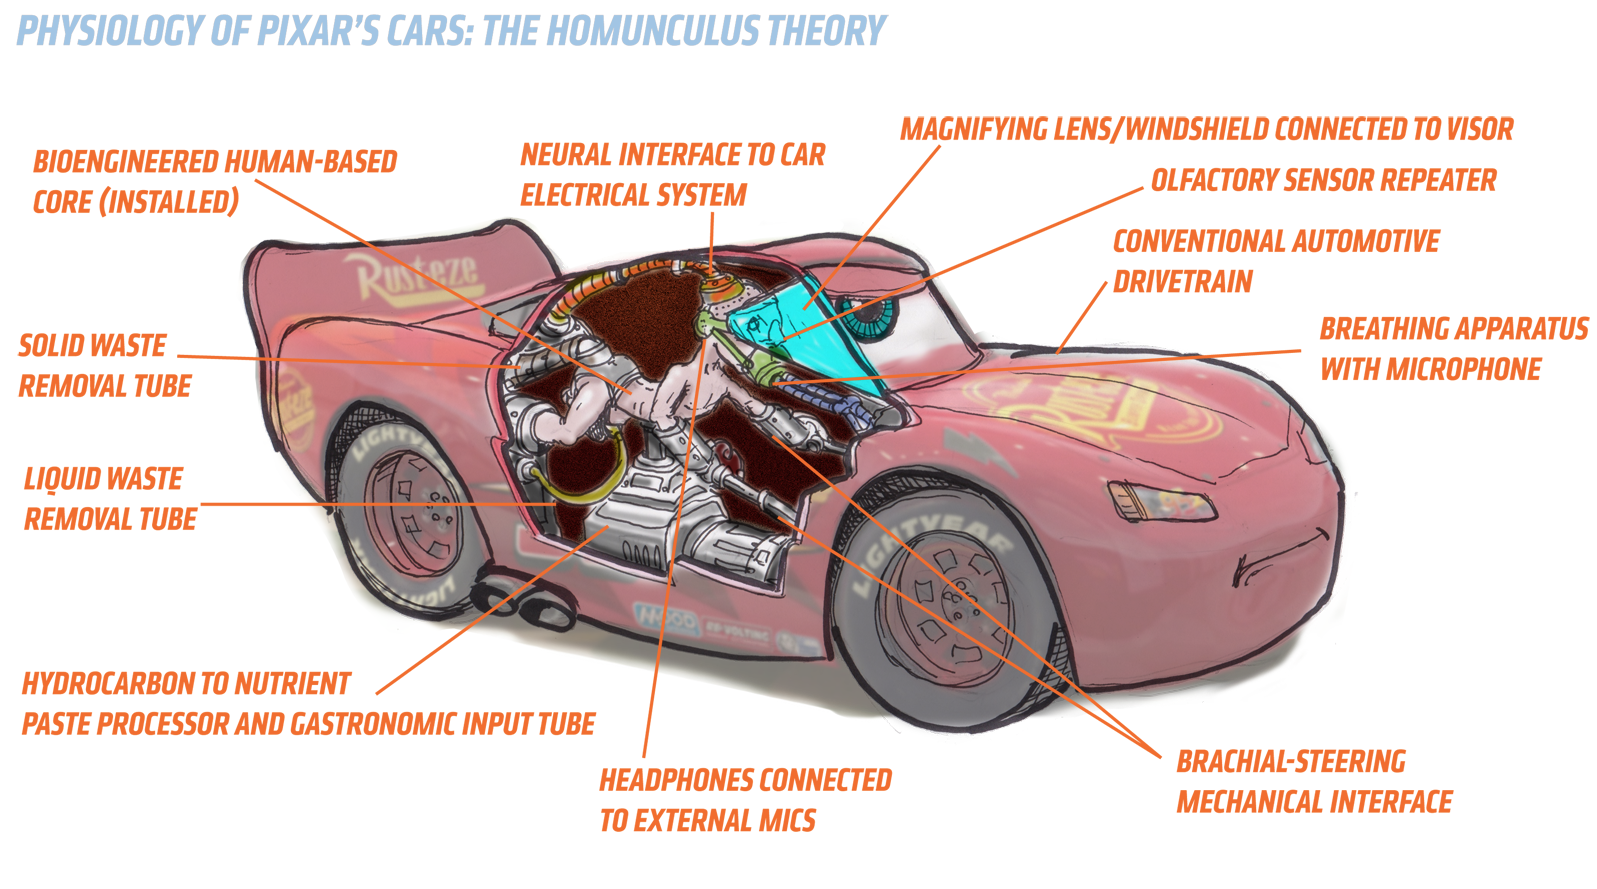 The Homunculus Theory